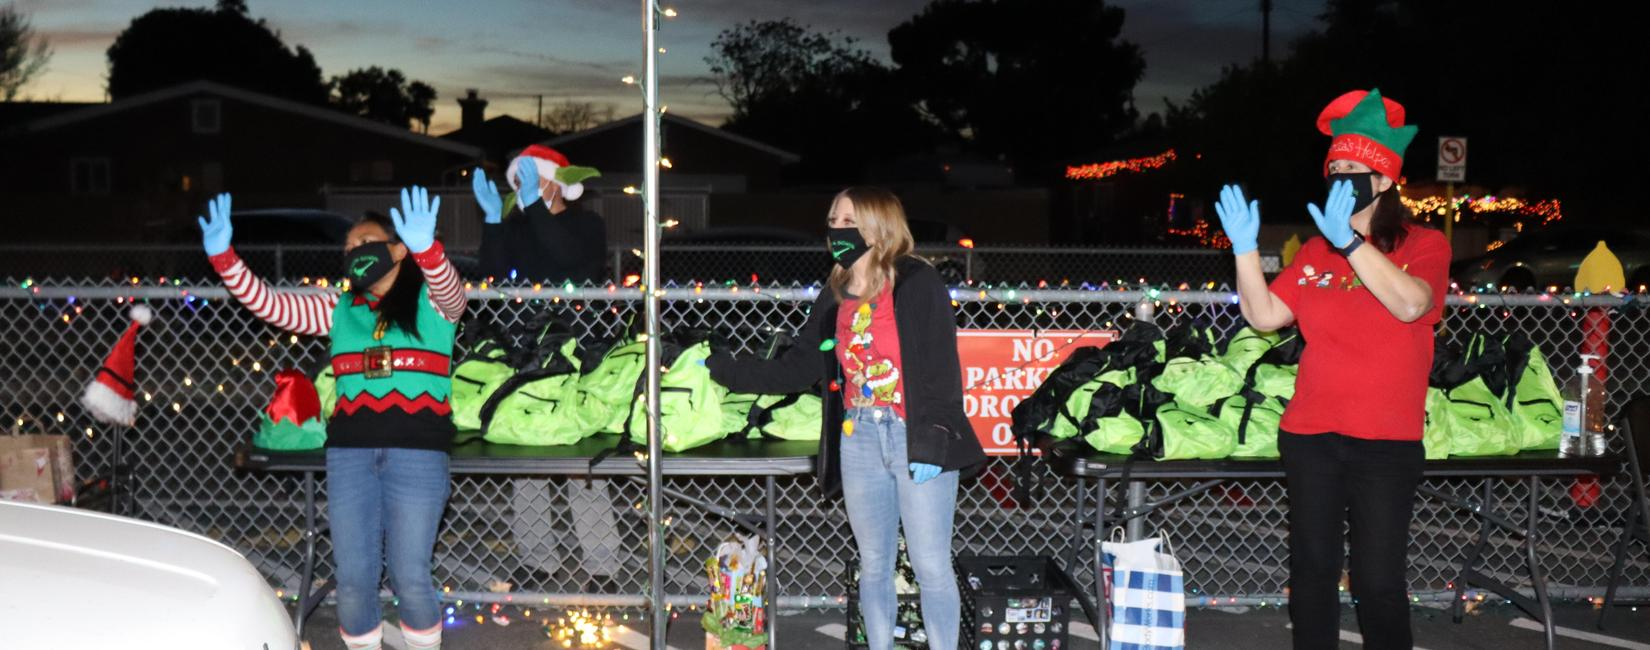 Staff at Rio Vista greet students at Holiday Parade